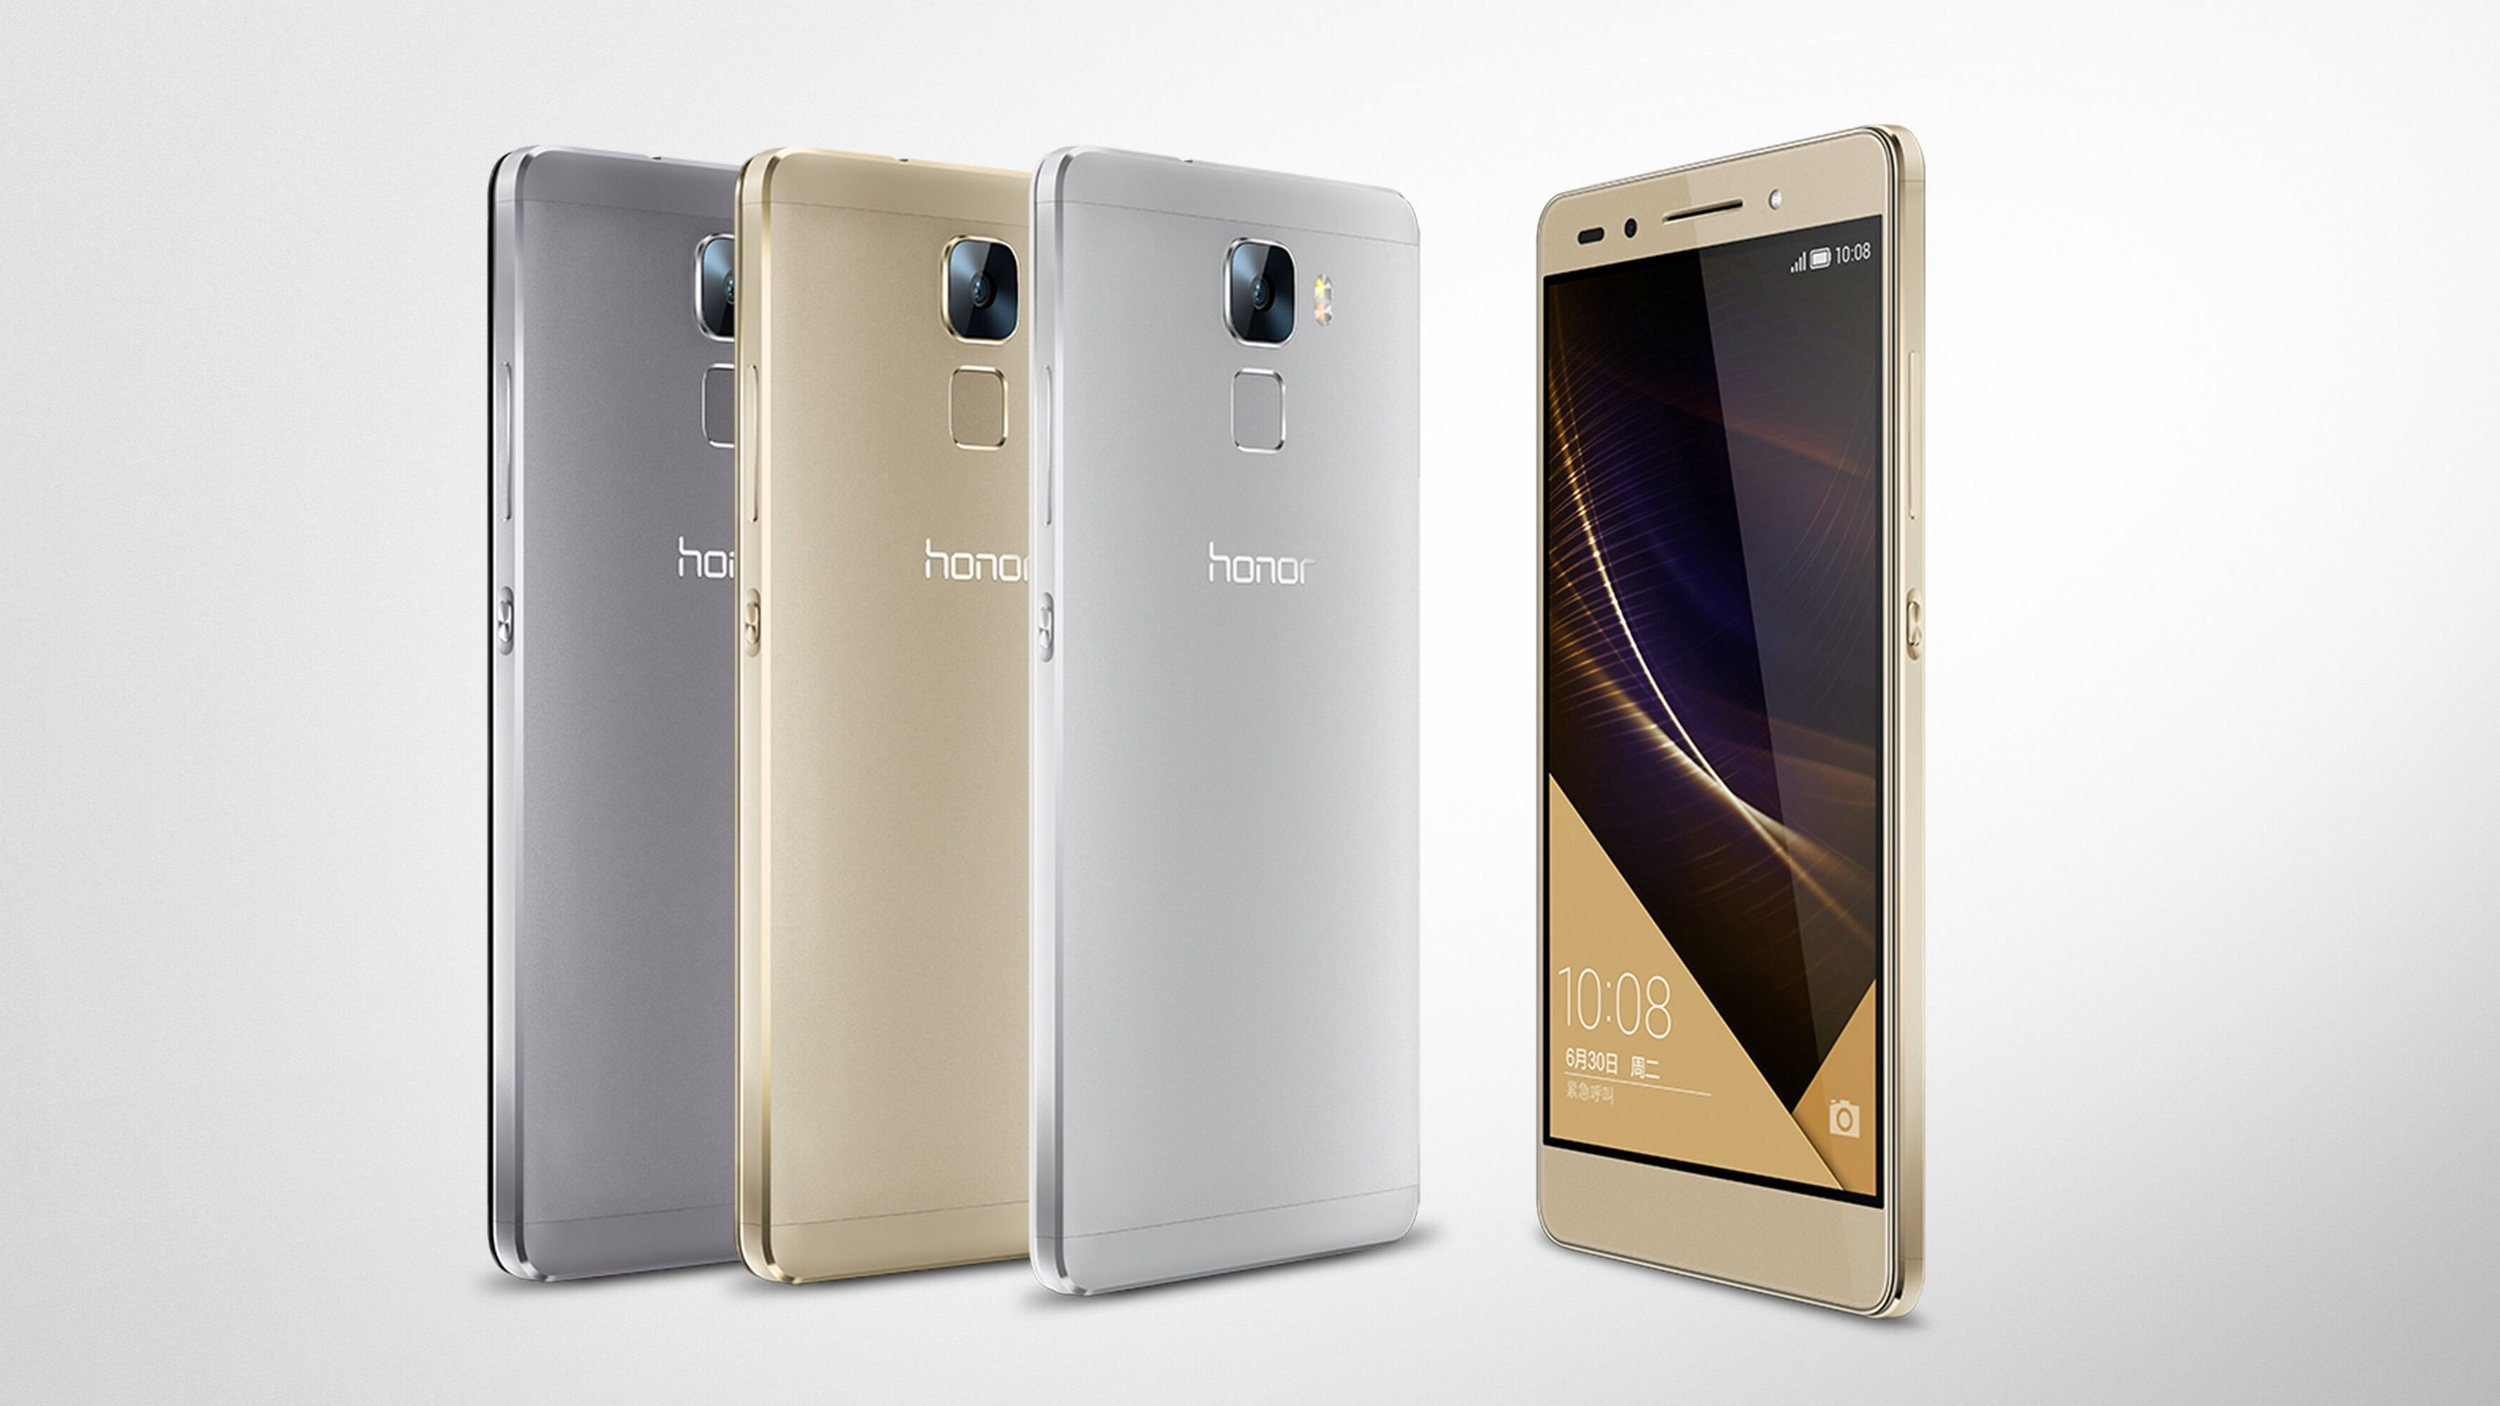 Huawei Honor 7 Android 6.0 Marshmallow Pc-Tablet Media